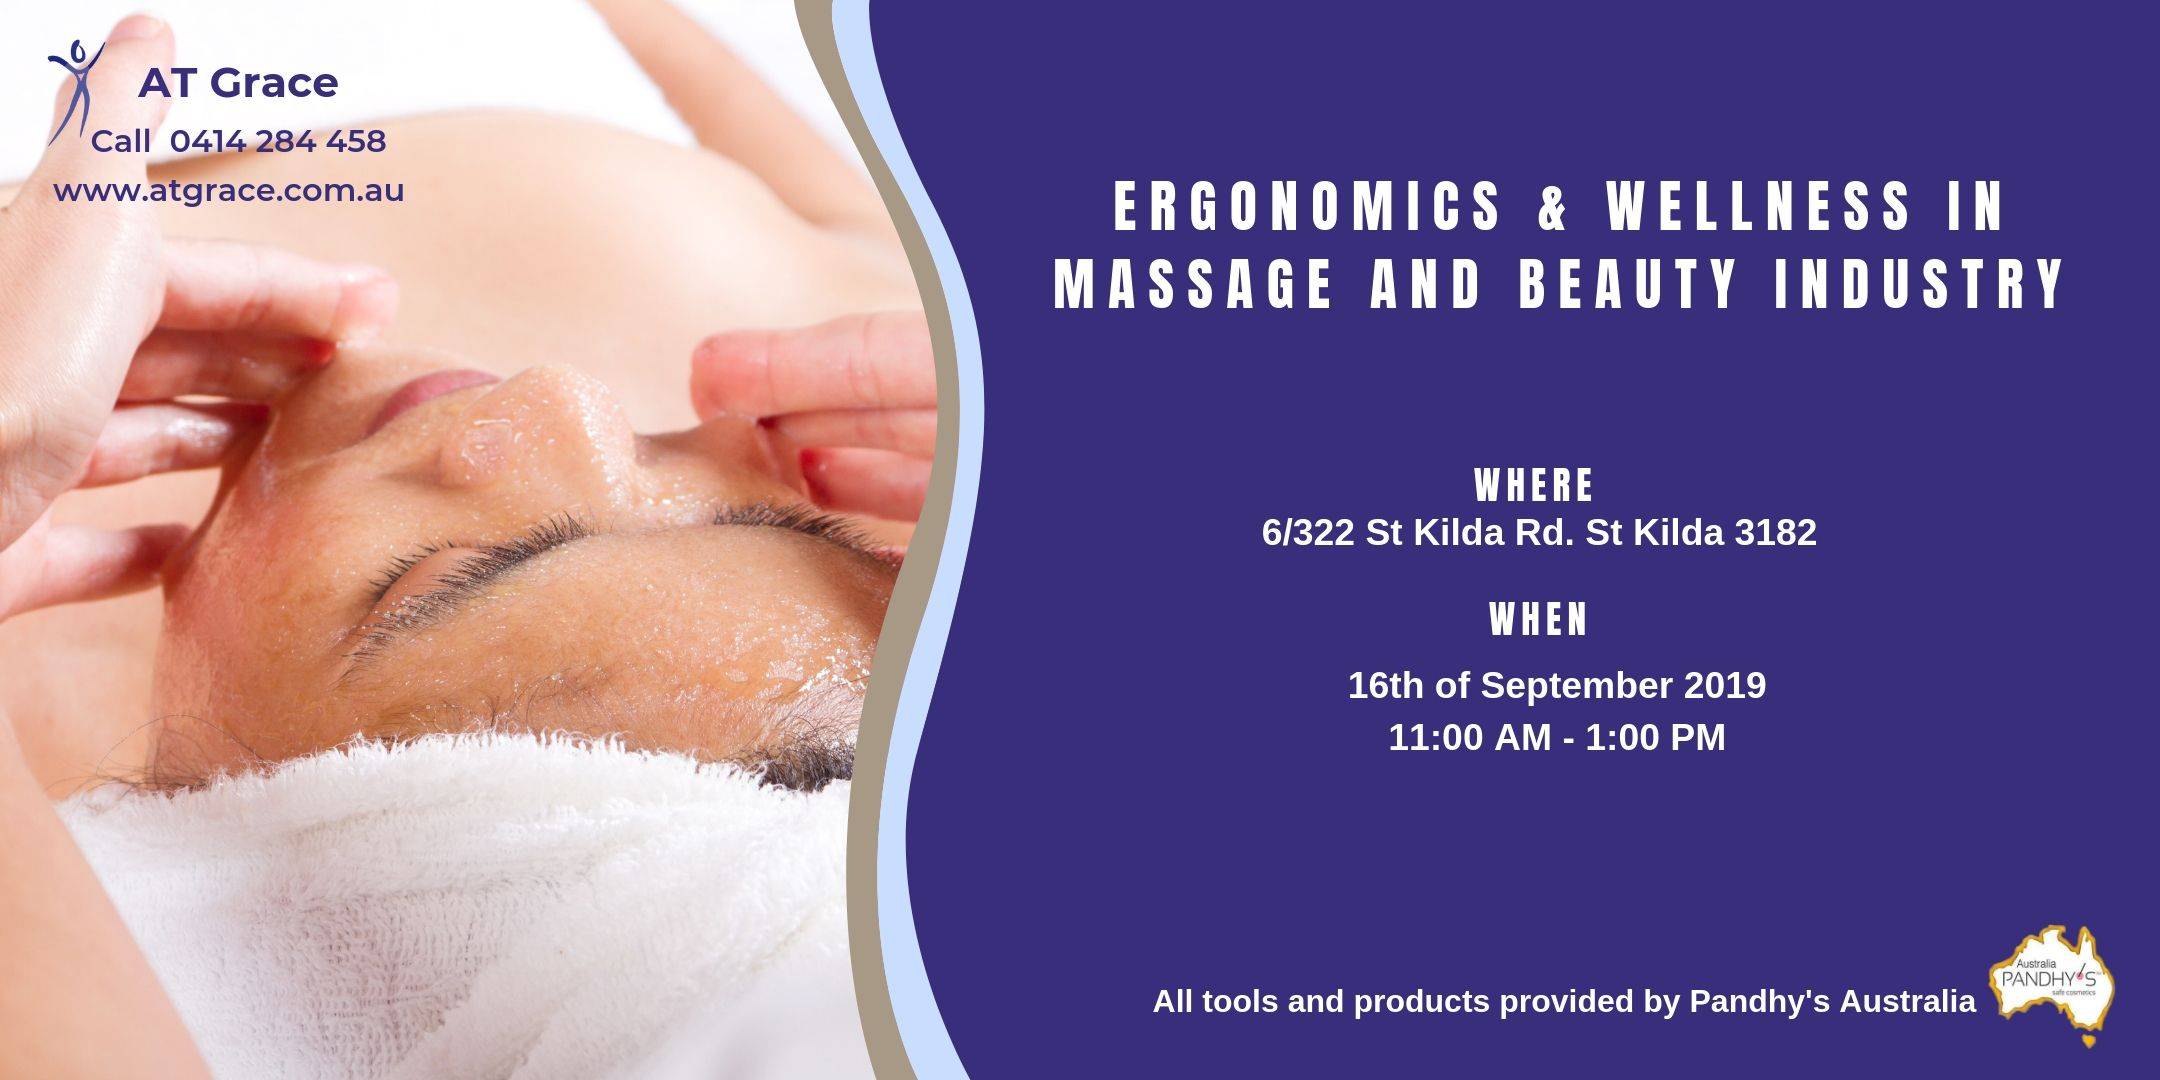 Ergonomics & Wellness in Massage and Beauty industry.